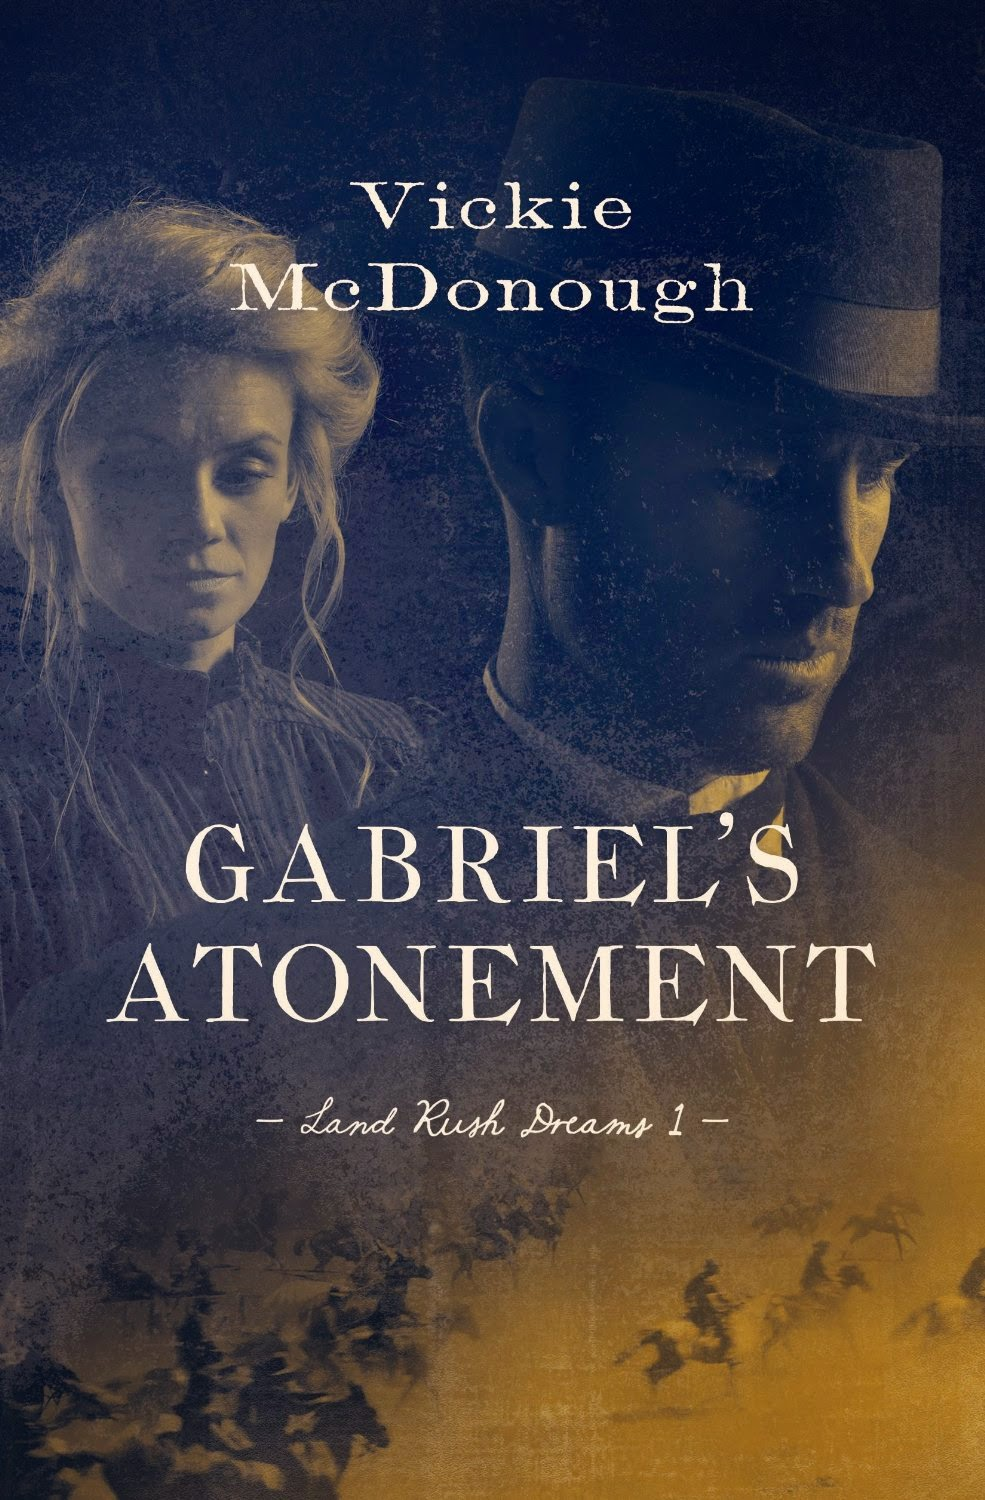 atonement a narrative review In his latest book atonement ian mcewan the highly decorated novelist deploys his research in an effective if familiar pattern of narrative reviews share on.